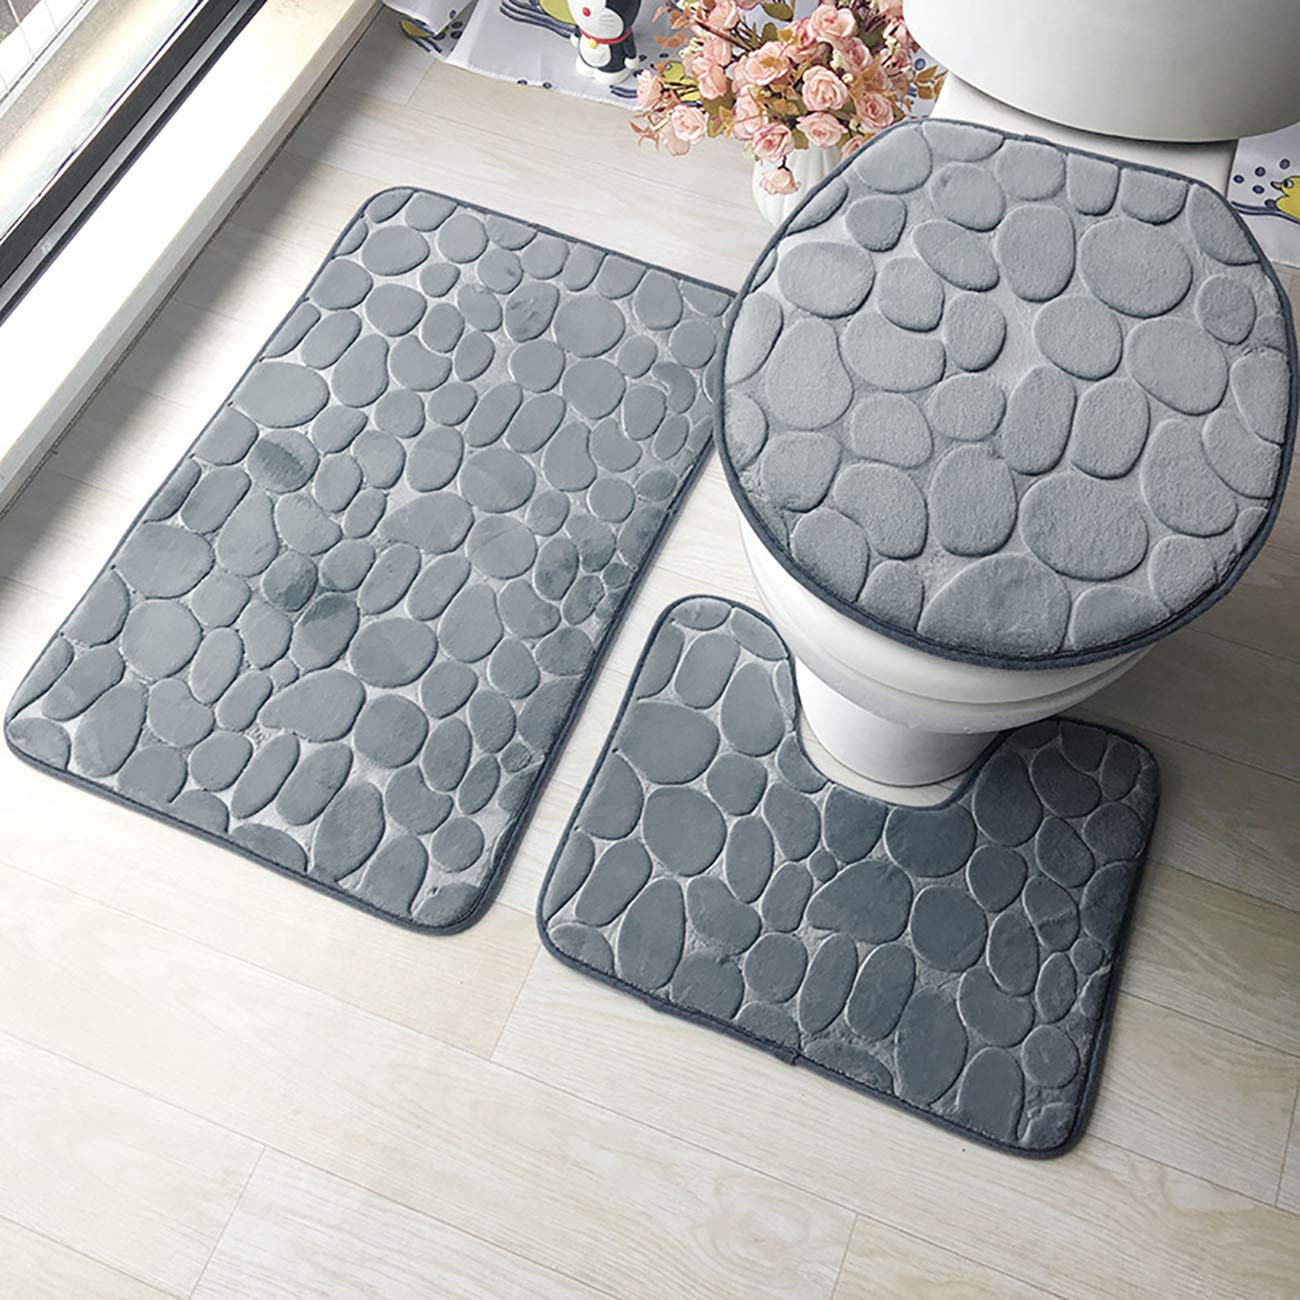 JMsDream 3PCS Toilet Carpet Mats Seat Cushion Cover Doormat Absorbent Flannel Embossing Bathroom Non-slip